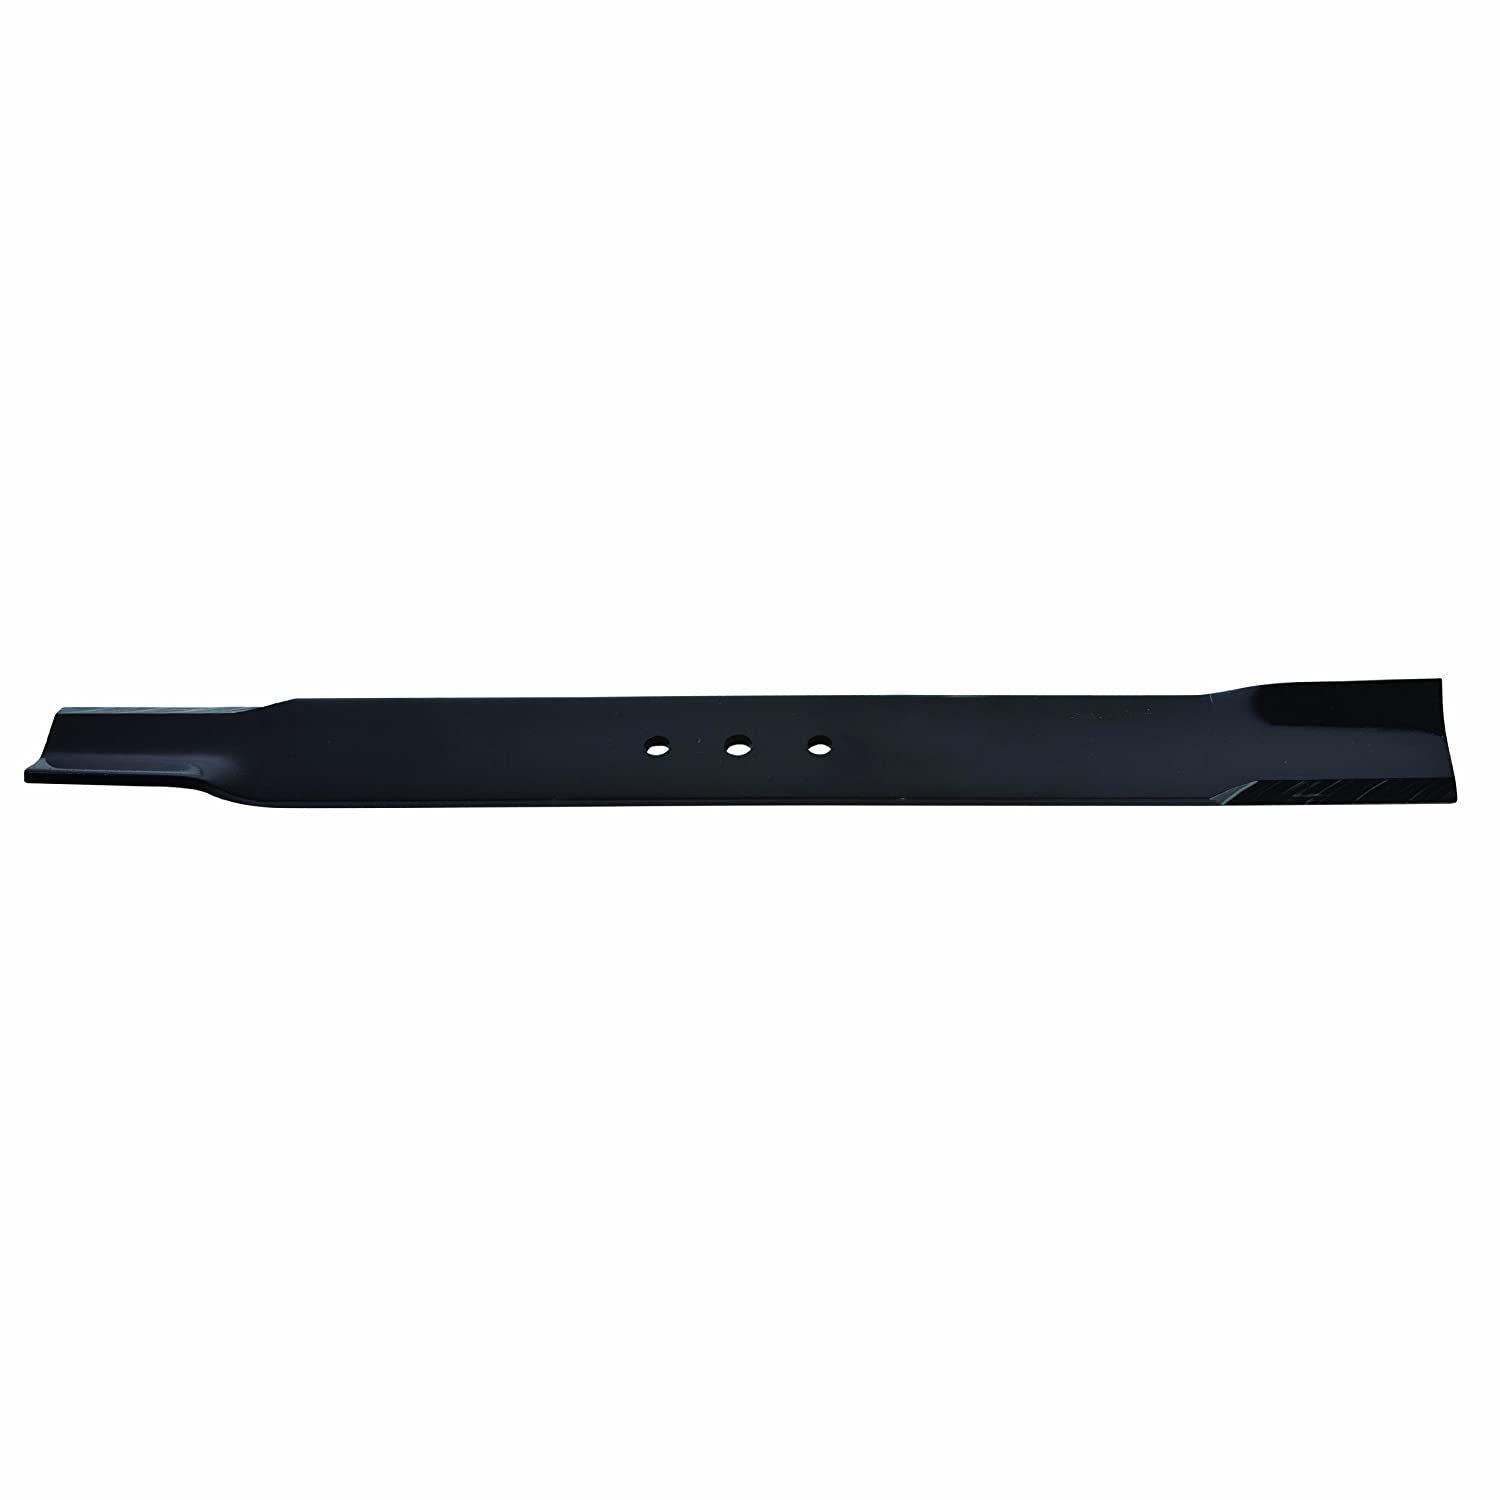 Oregon 91-352 Jacobsen Replacement Lawn Mower Blade 24-15/16-Inch